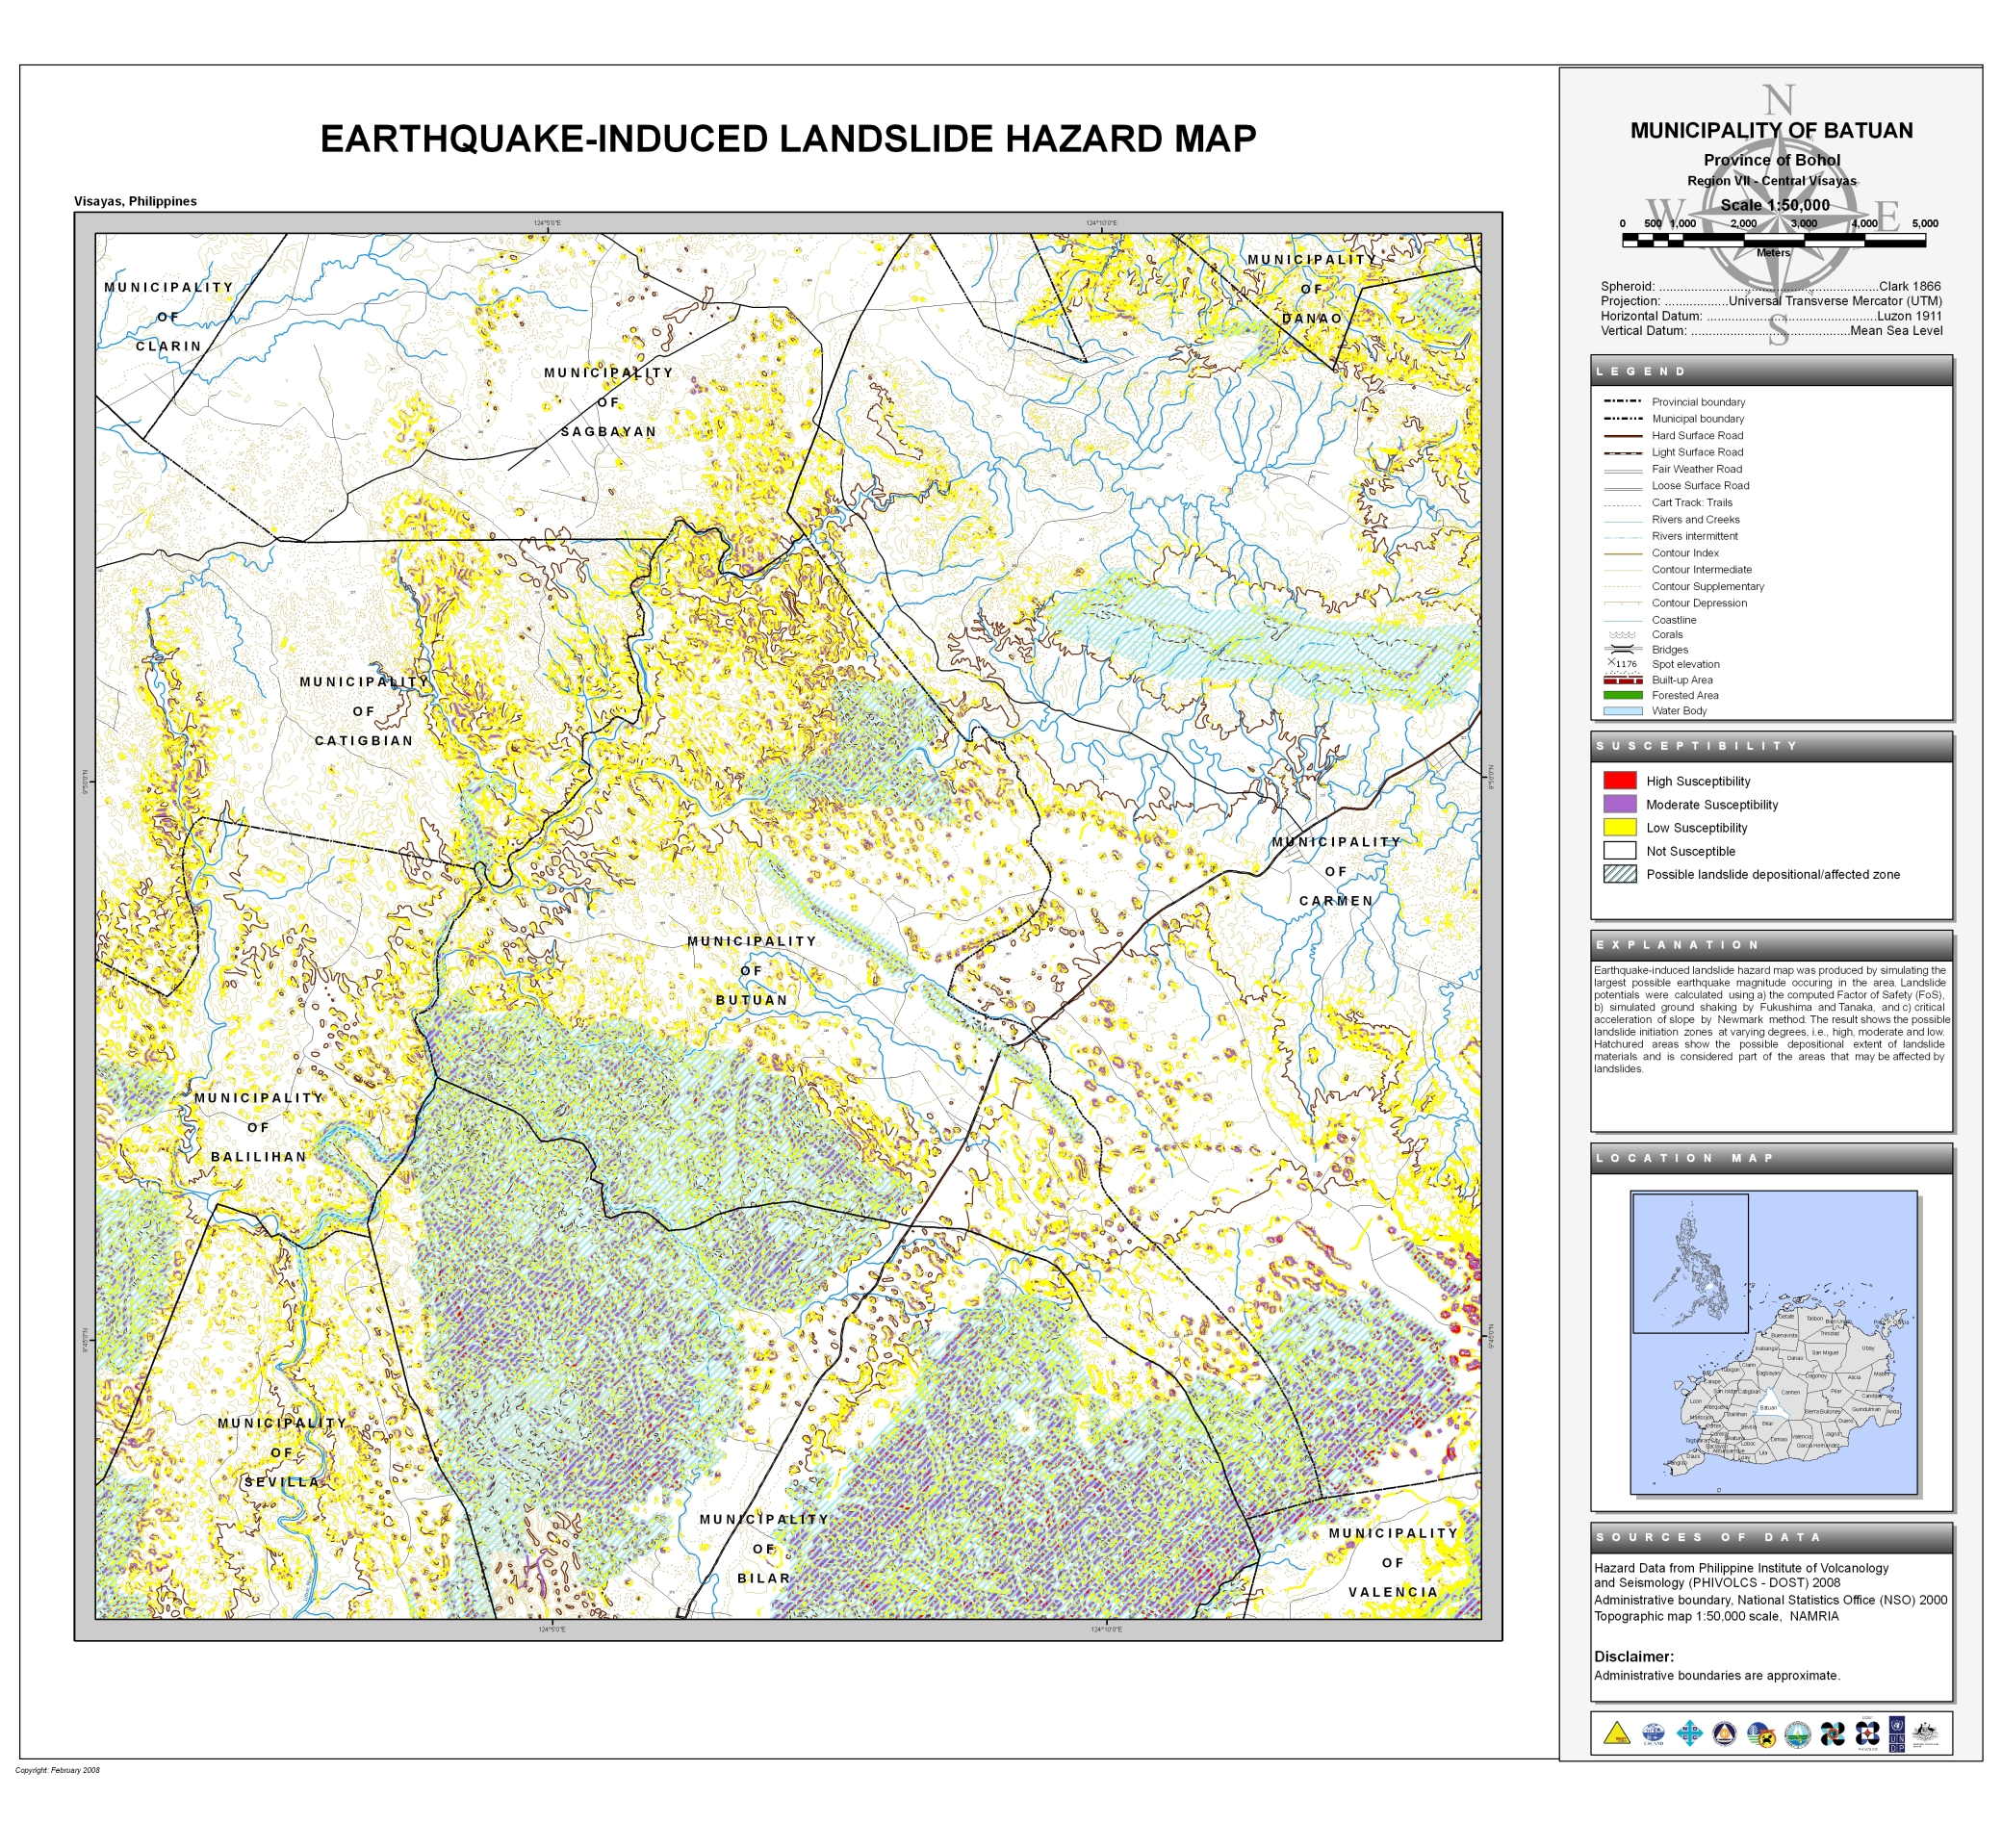 Batuan Earthquake-Induced Landslide